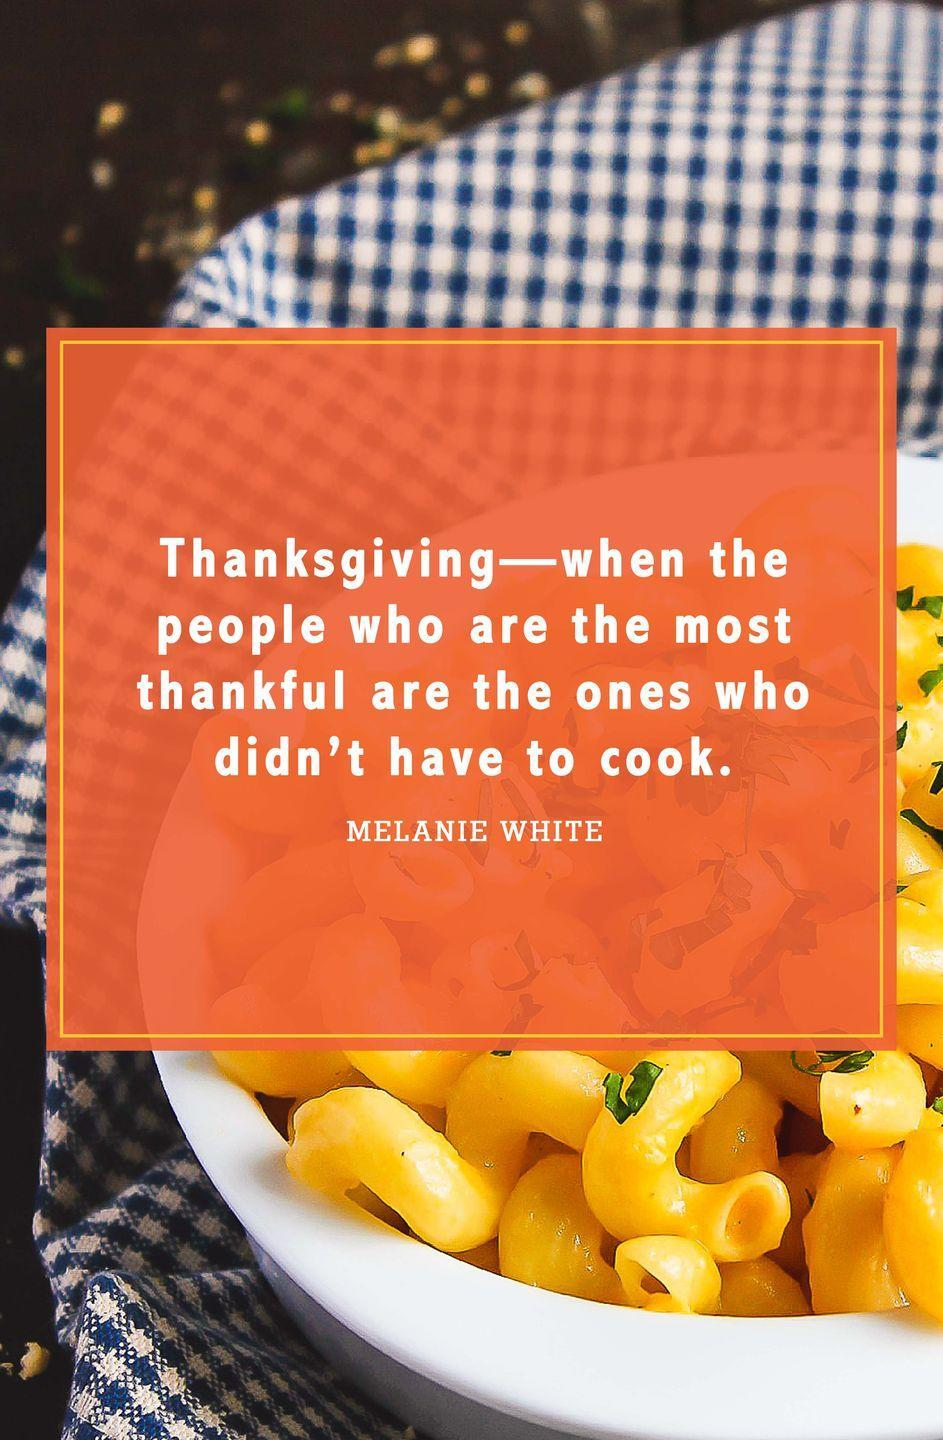 "<p>""Thanksgiving—when the people who are the most thankful are the ones who didn't have to cook.""</p>"